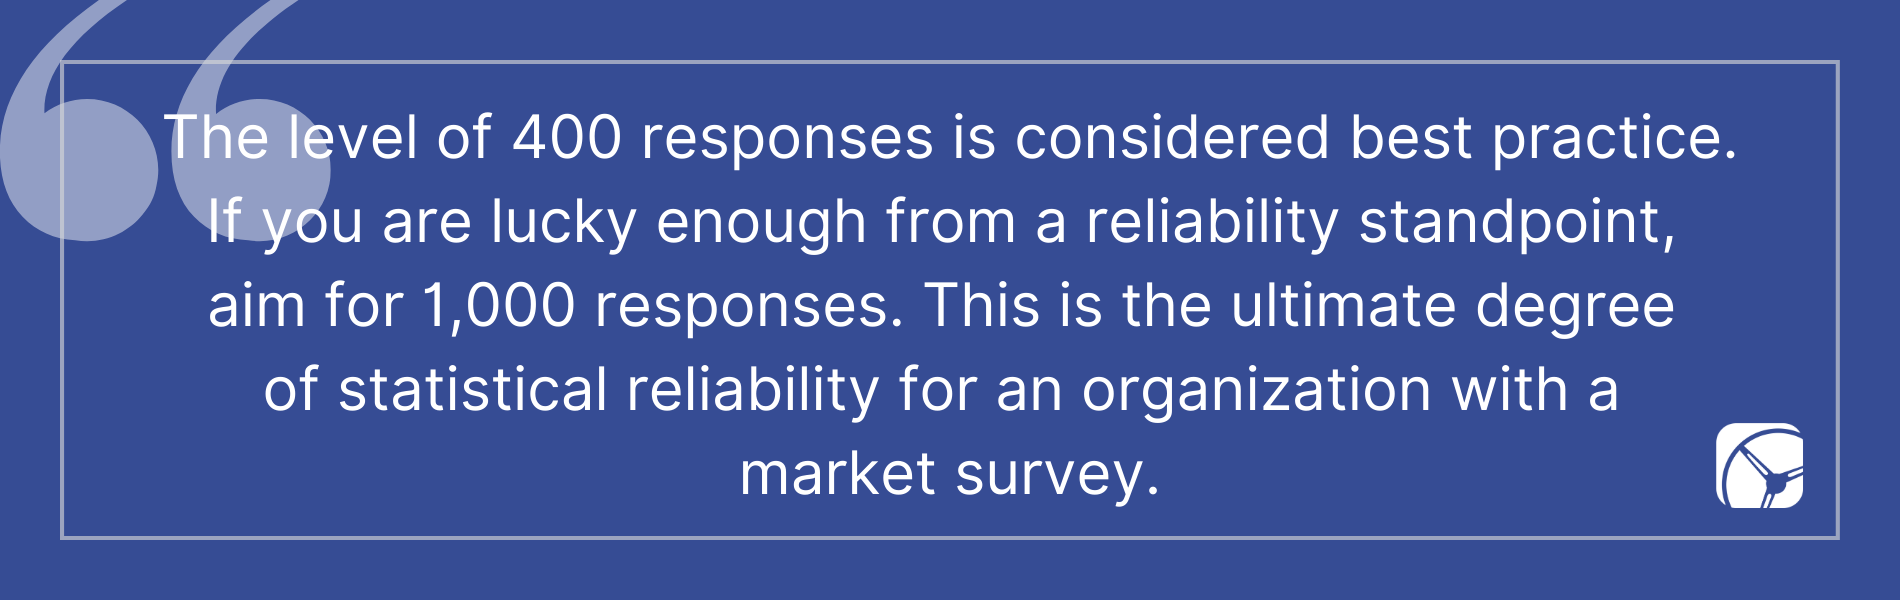 The level of 400 responses is considered best practice. If you are lucky enough from a reliability standpoint,  aim for 1,000 responses. This is the ultimate degree  of statistical reliability for an organization with a  market survey.